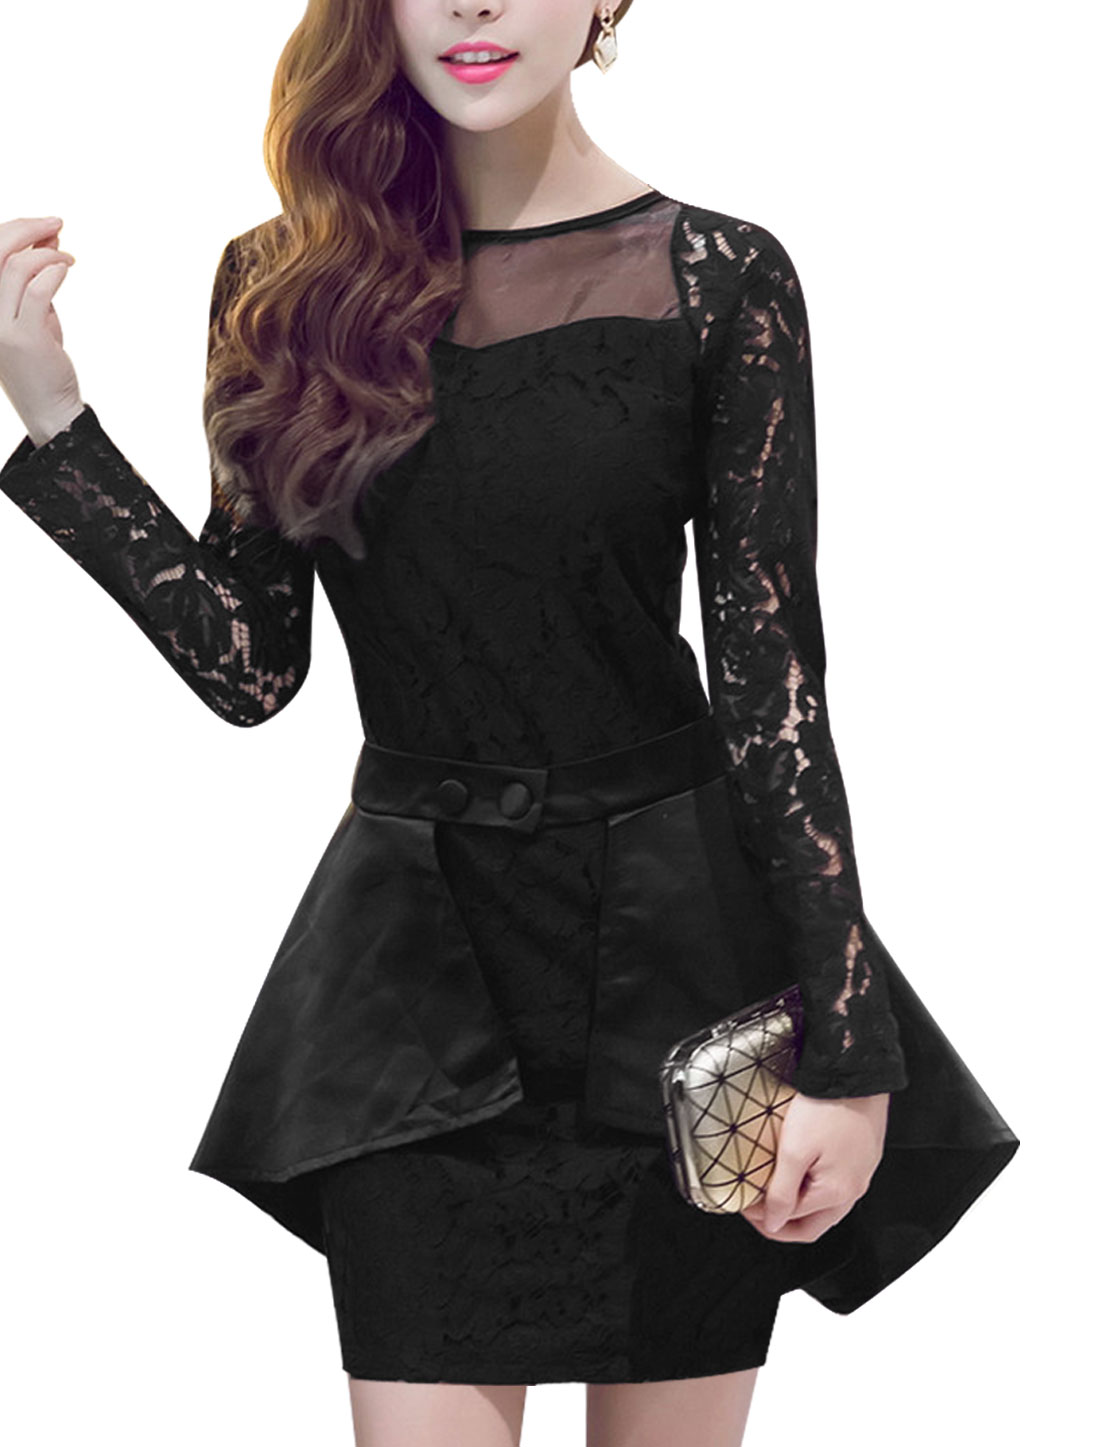 Women Long Sleeves Lace Sheath Dress w Detachable Overlay Black M